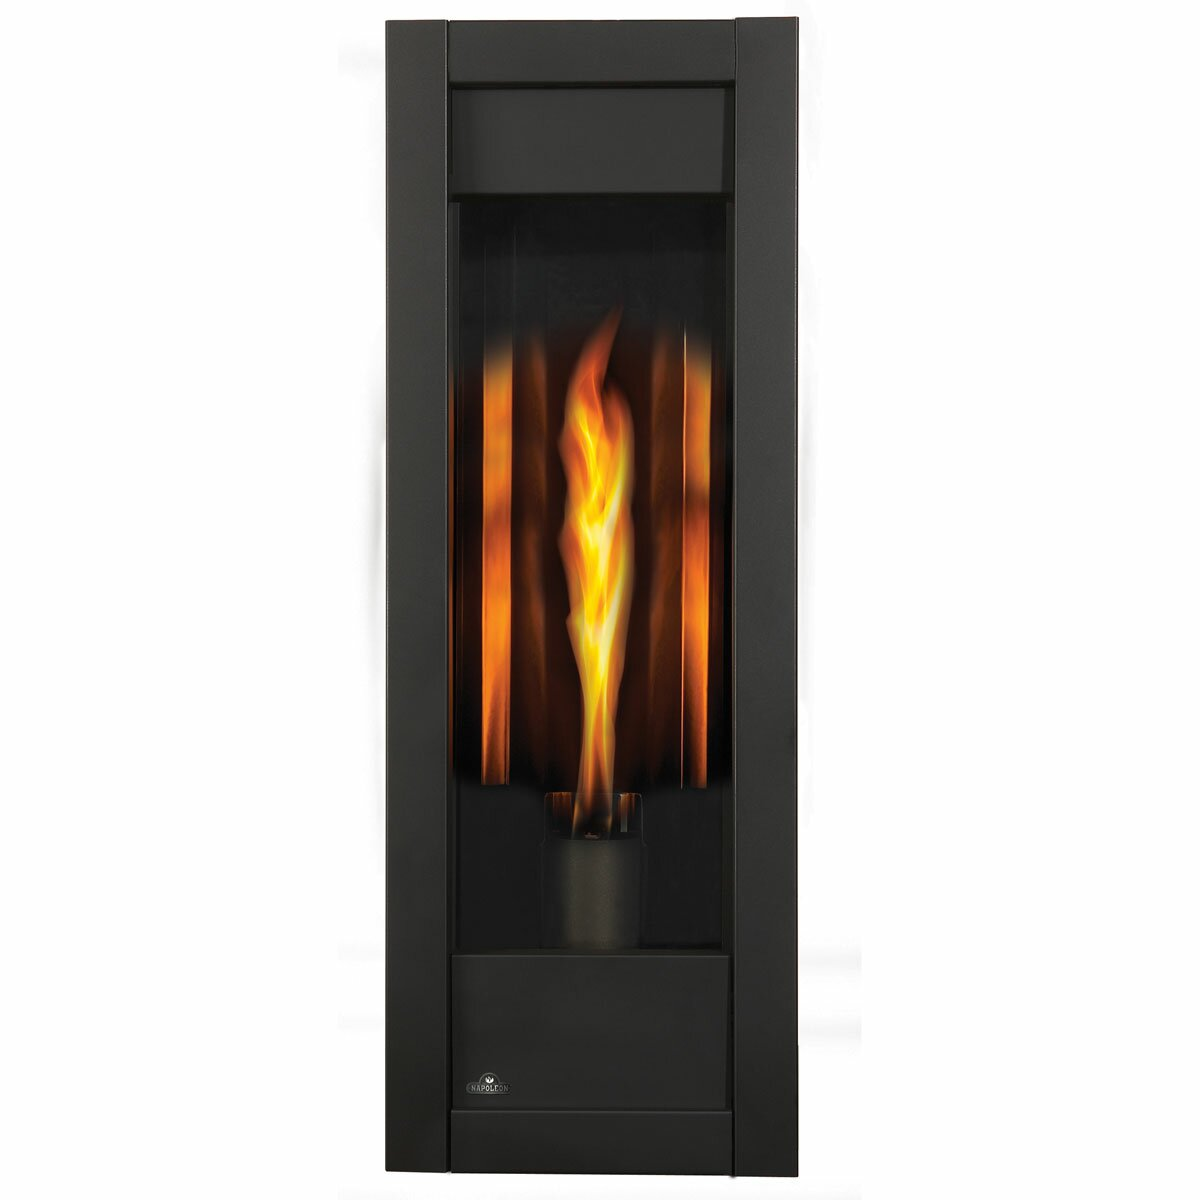 Natural gas wall mount fireplaces - Napoleon The Torch Direct Vent Wall Mount Gas Fireplace